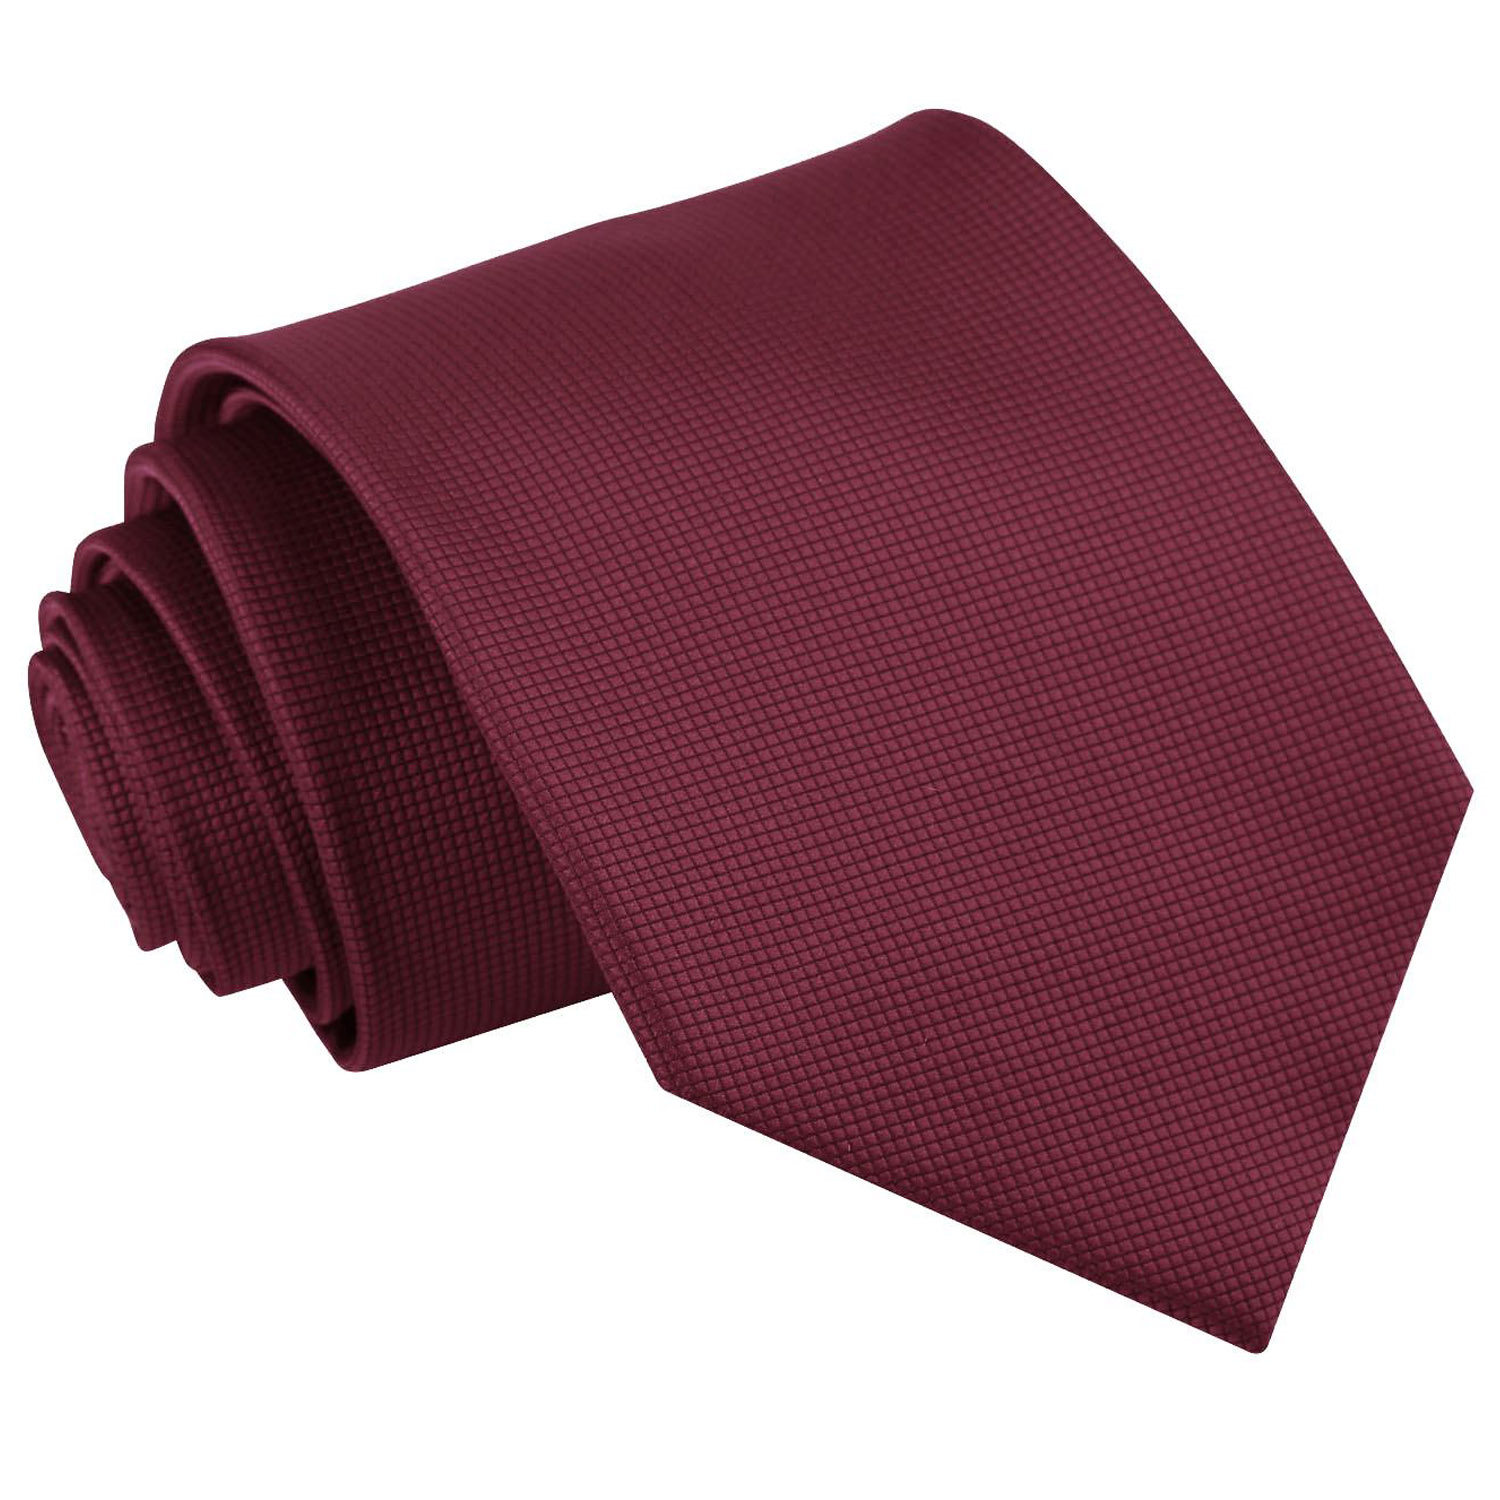 229cefe03f134 Burgundy Solid Check Classic Tie - James Alexander